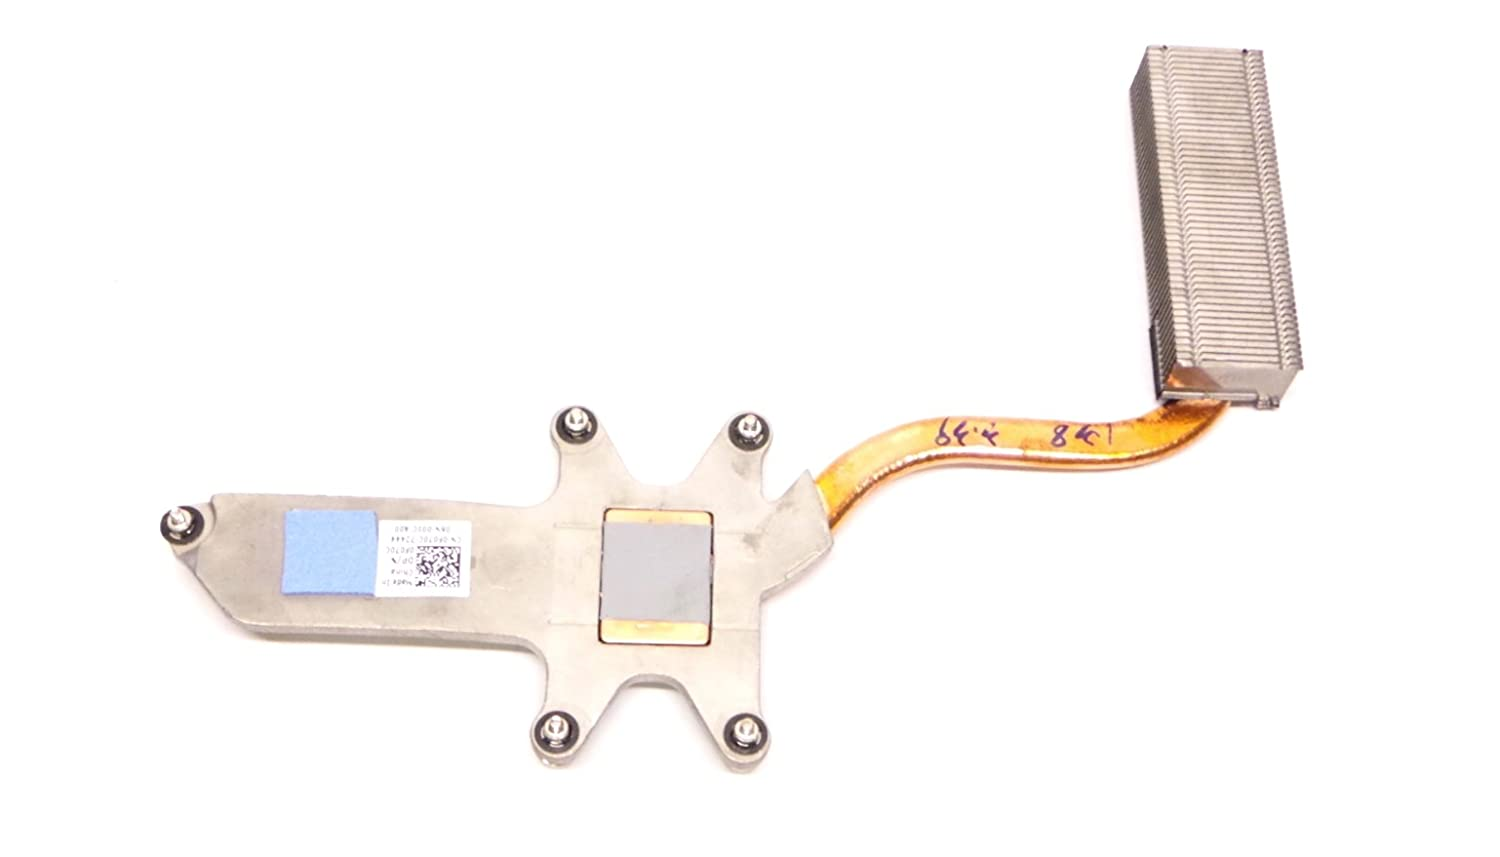 Genuine F070C Dell Latitude E5500 Laptop CPU Cooling Heatsink Compatible Part Numbers: F070C